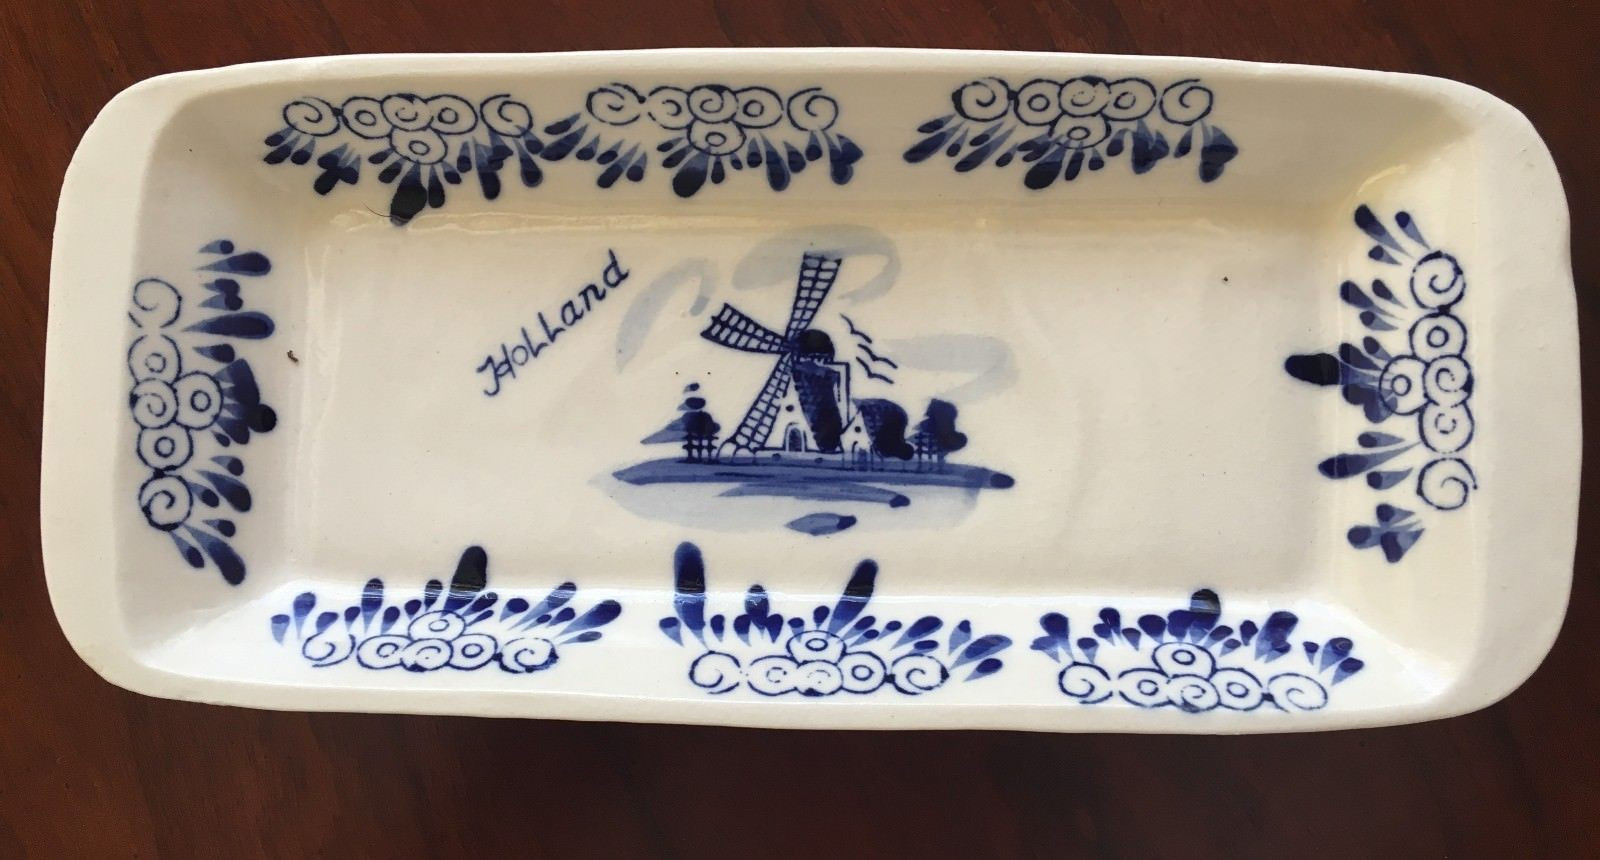 delft vase holland of vtg ceramic 8 by 3 1 2 holland delft blue butter dish hand regarding 1 of 5free shipping